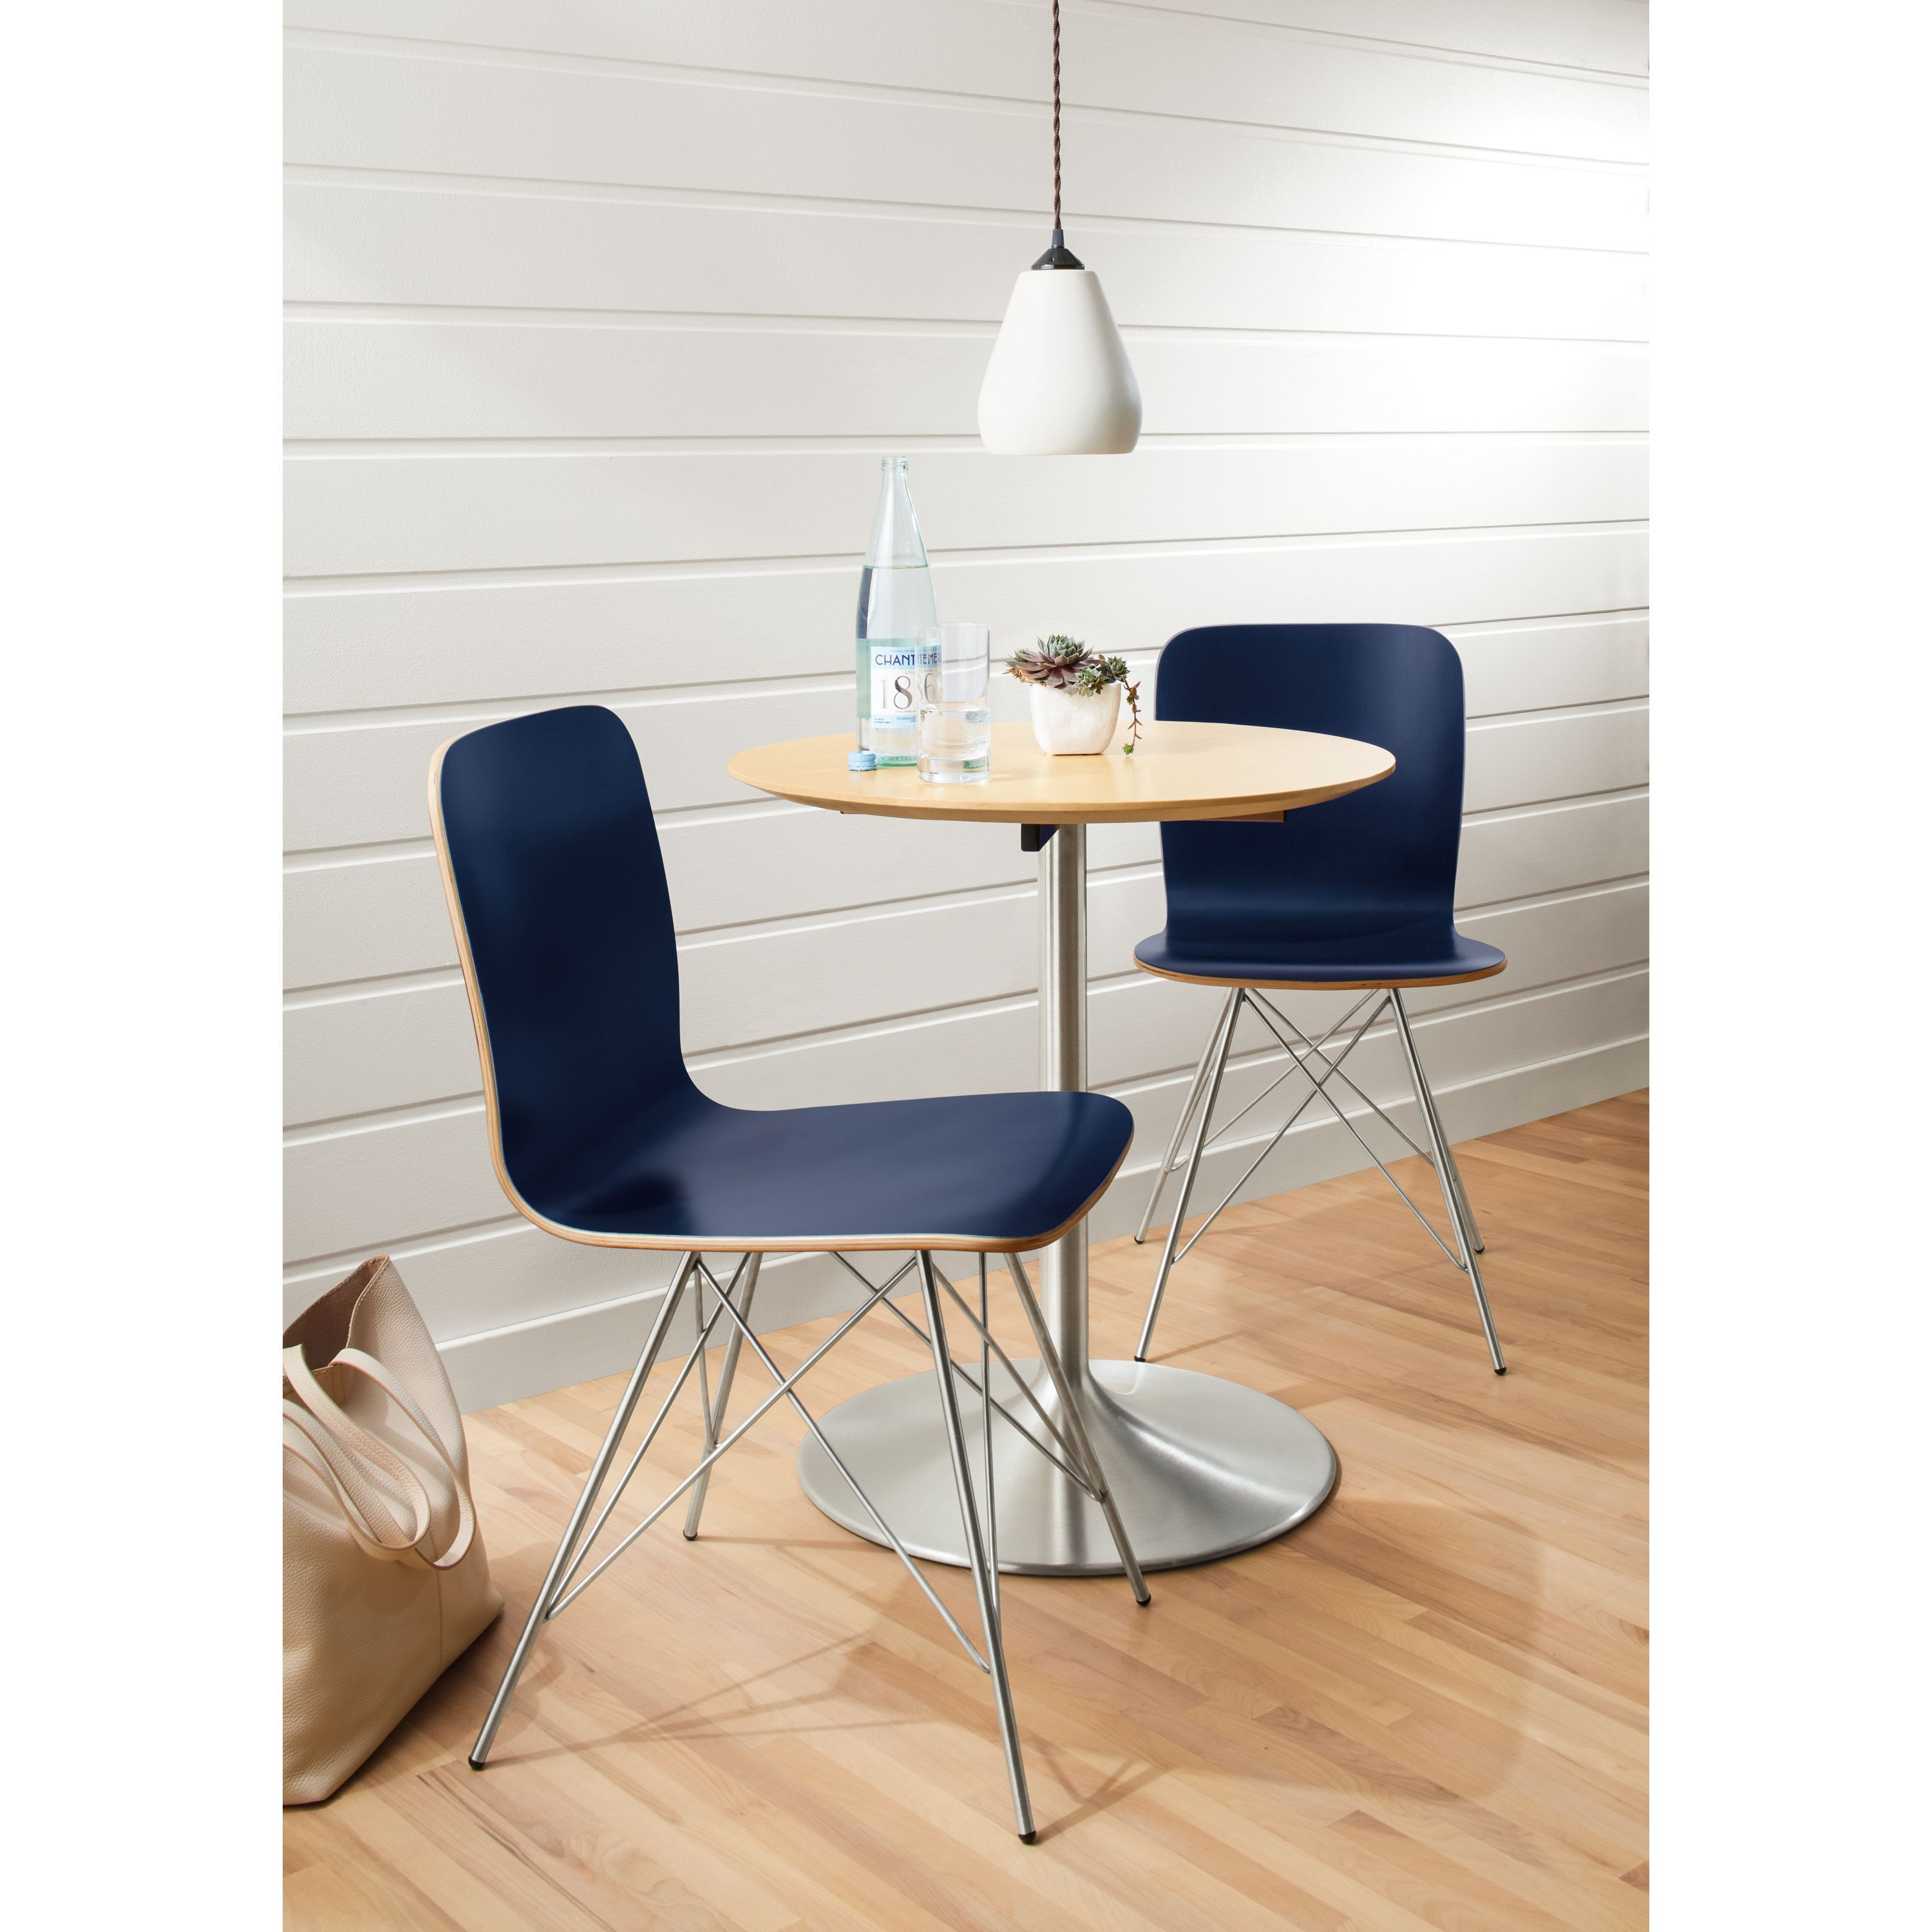 Room Board Aria Round Tables In 2020 Modern Dining Table